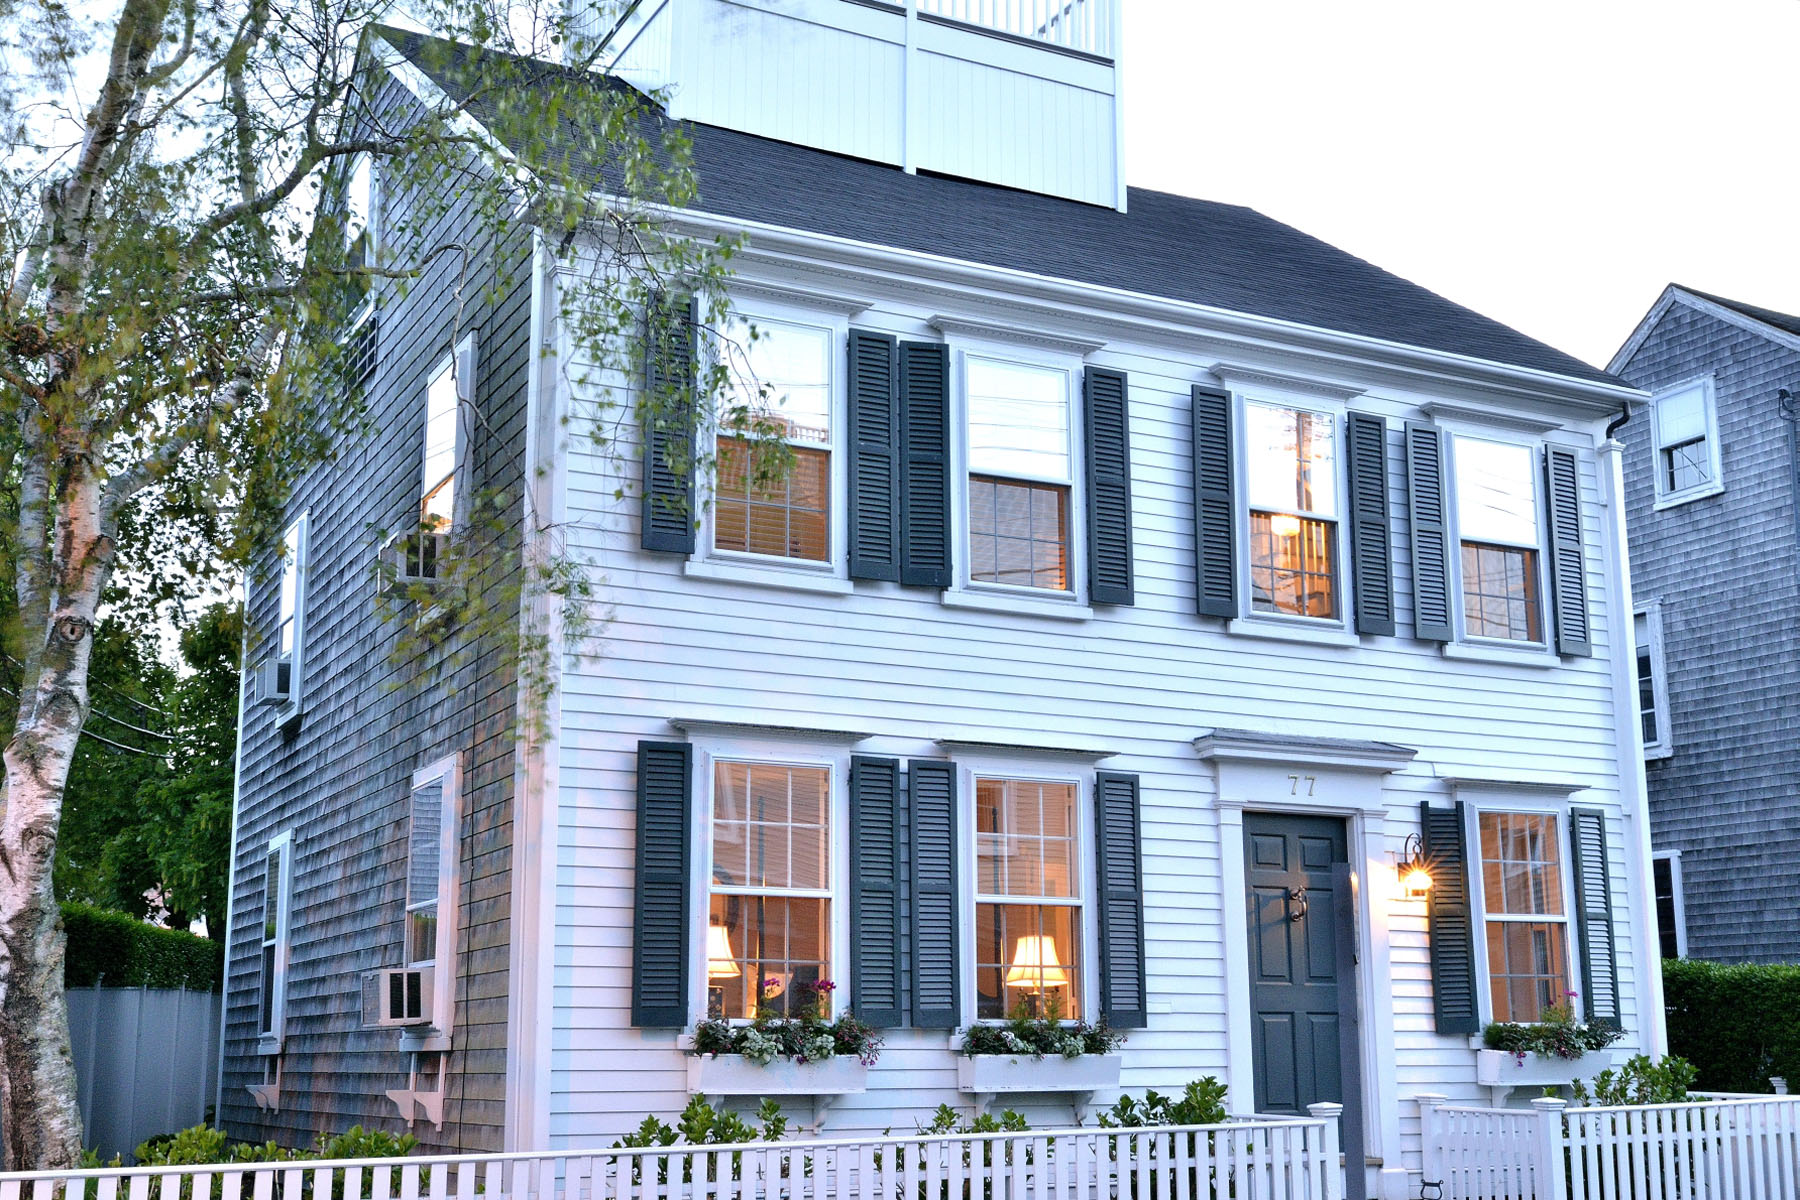 Casa Unifamiliar por un Venta en Simply Town! 77 Orange Street Nantucket, Massachusetts 02554 Estados Unidos